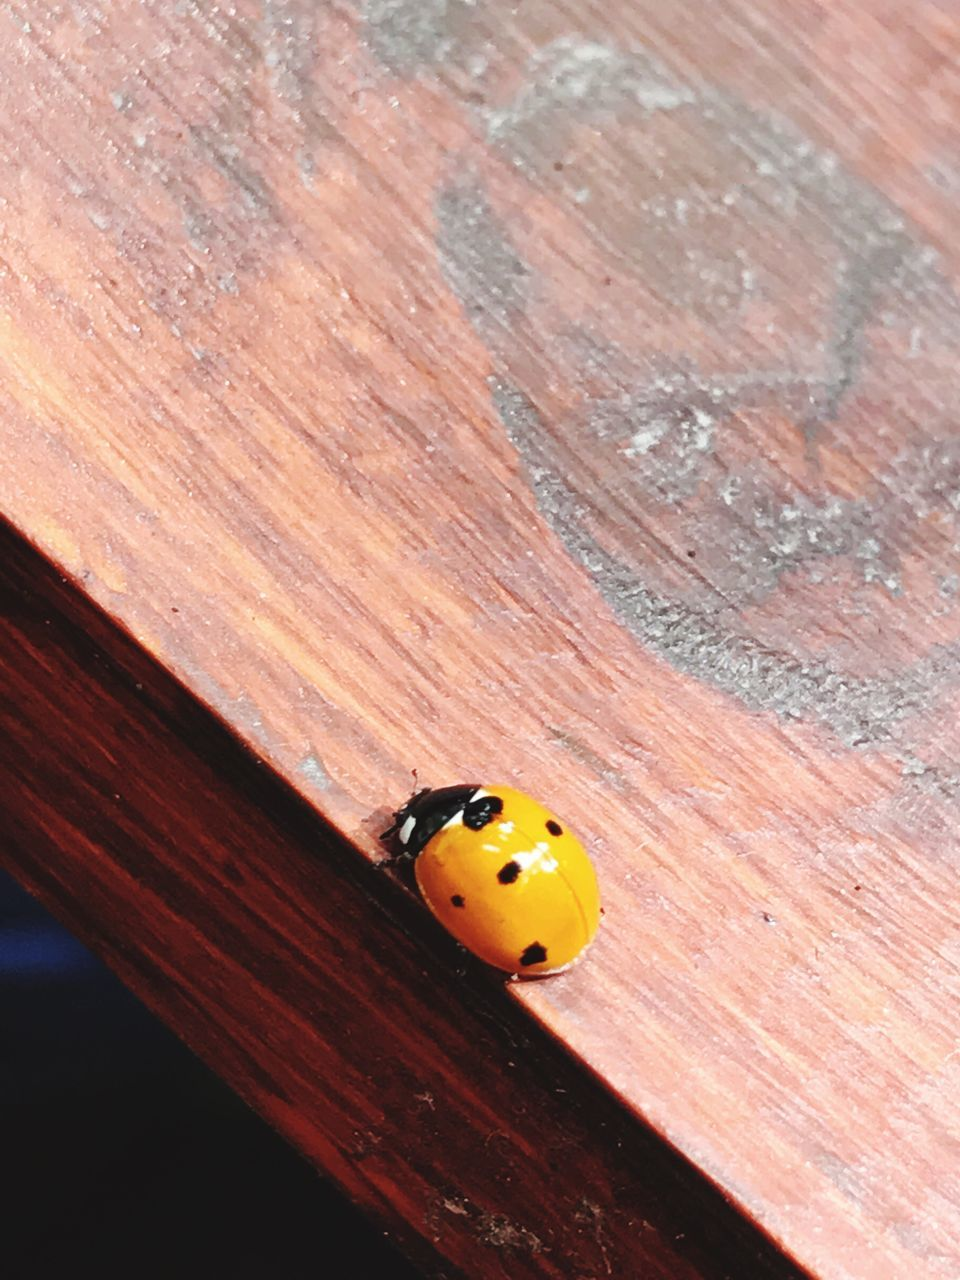 ladybug, wood - material, close-up, no people, red, tiny, yellow, day, indoors, animal themes